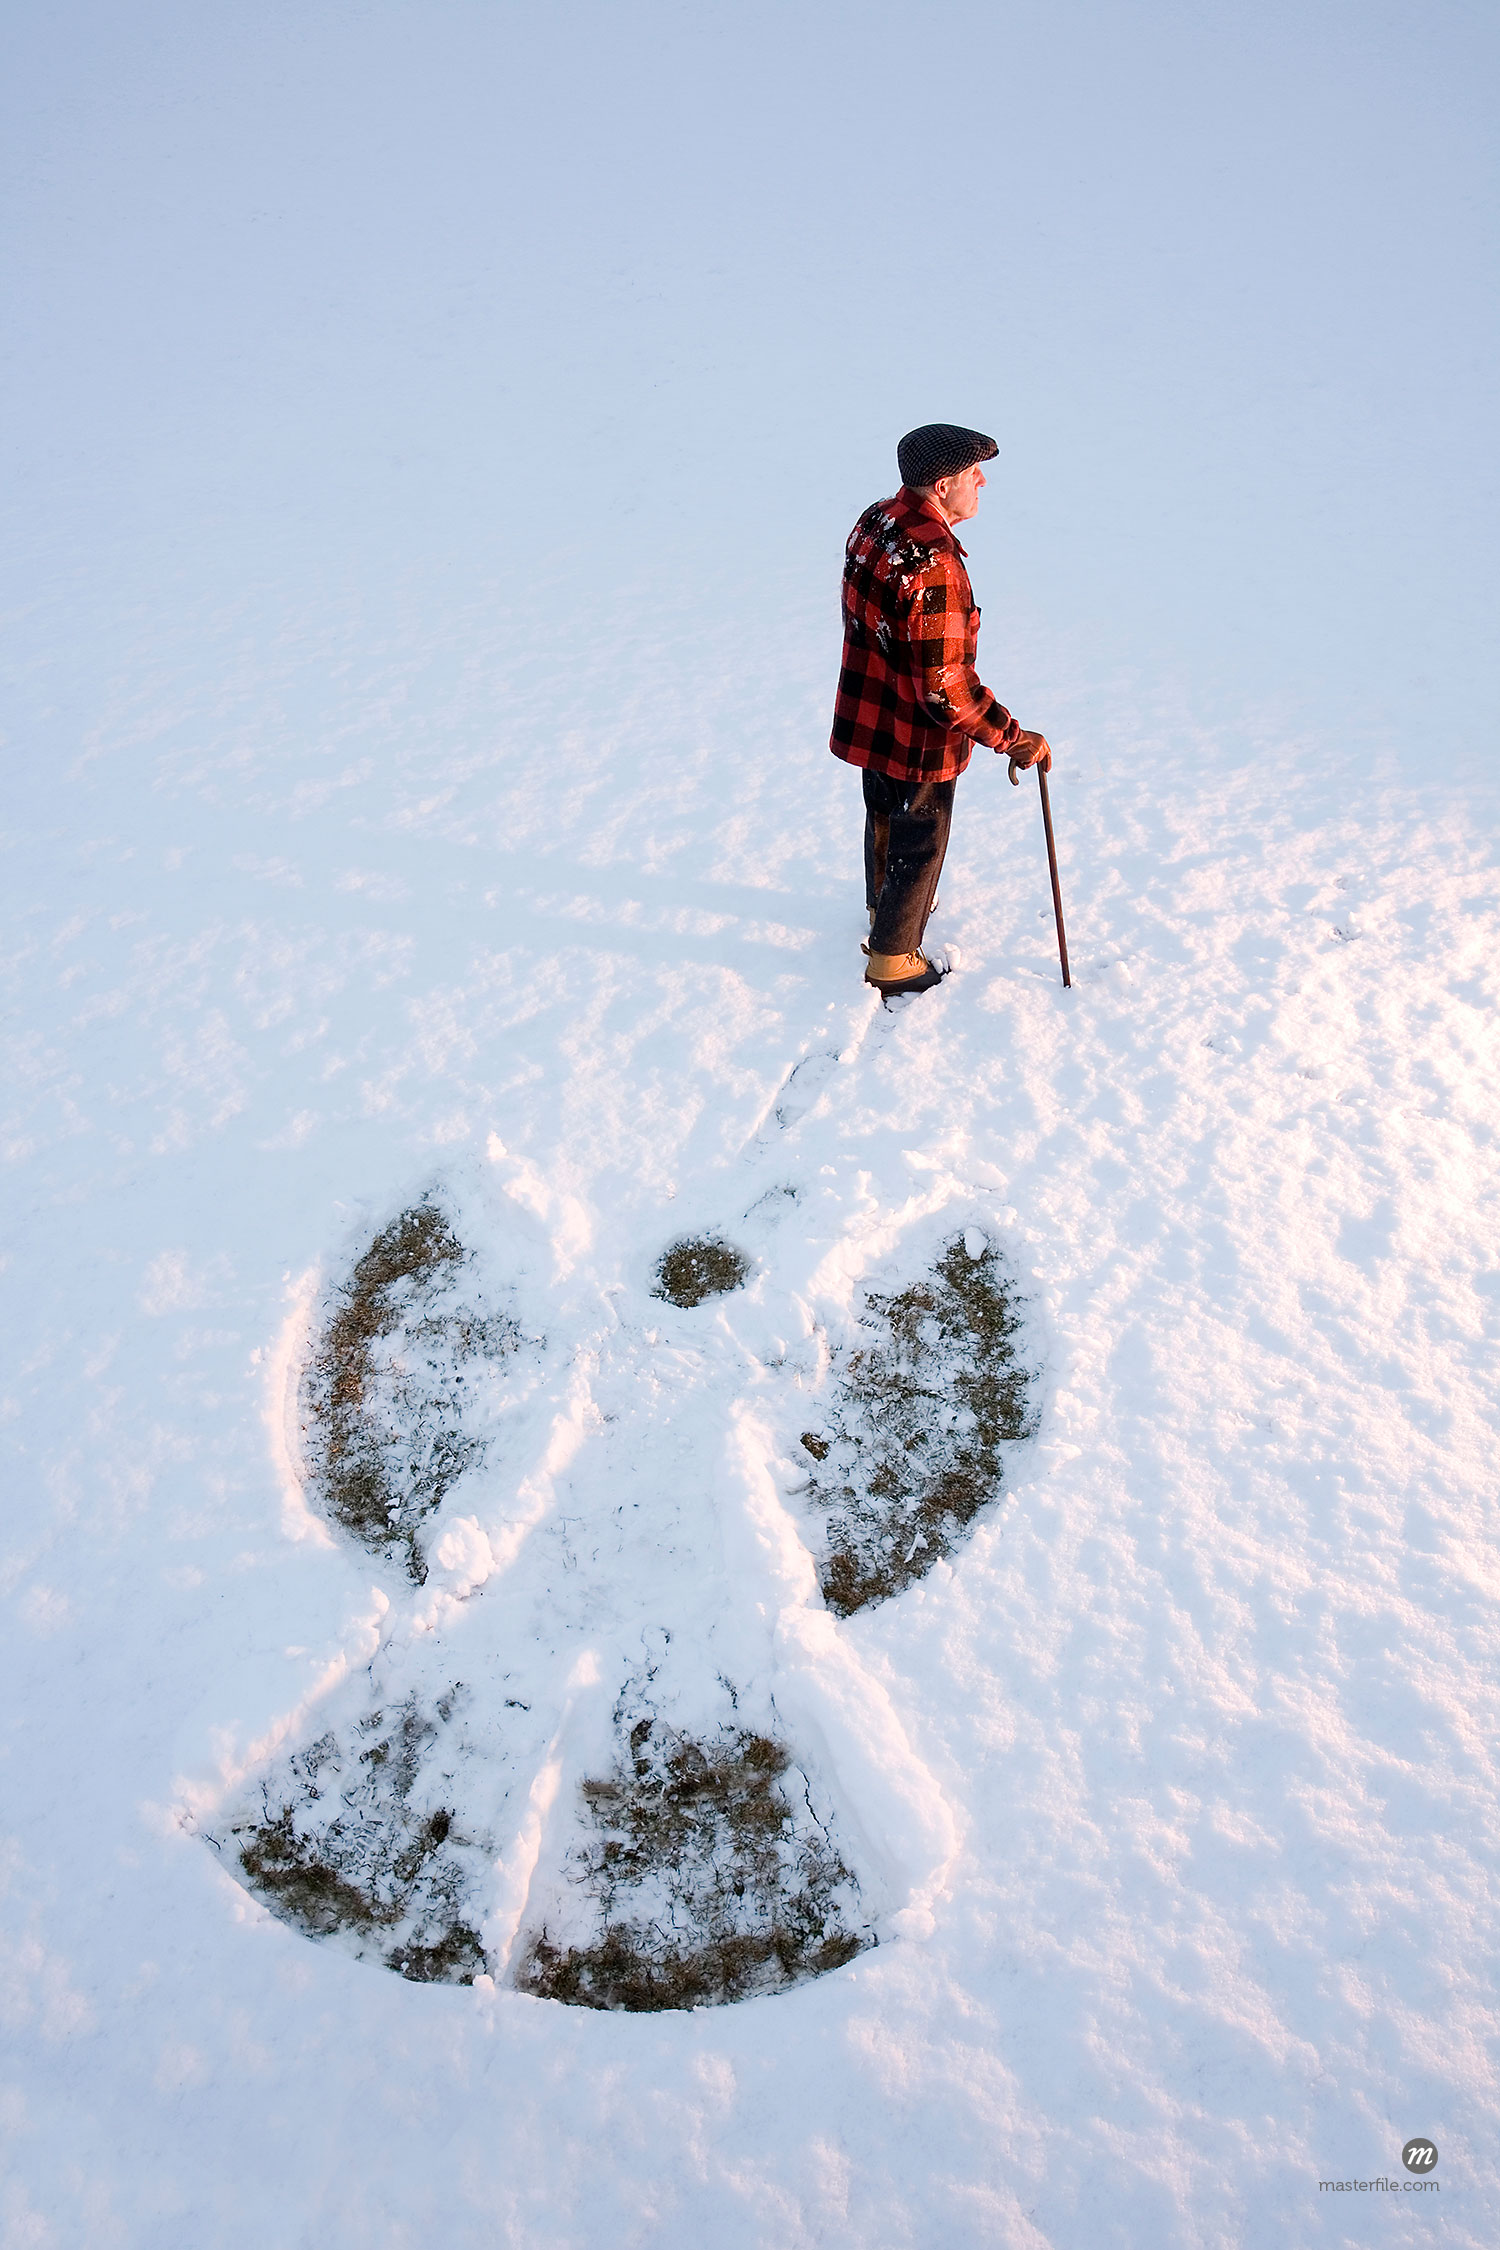 An elderly using a cane, standing in the snow beside a snow angel, New England, USA  © Michael Eudenbach / Masterfile.